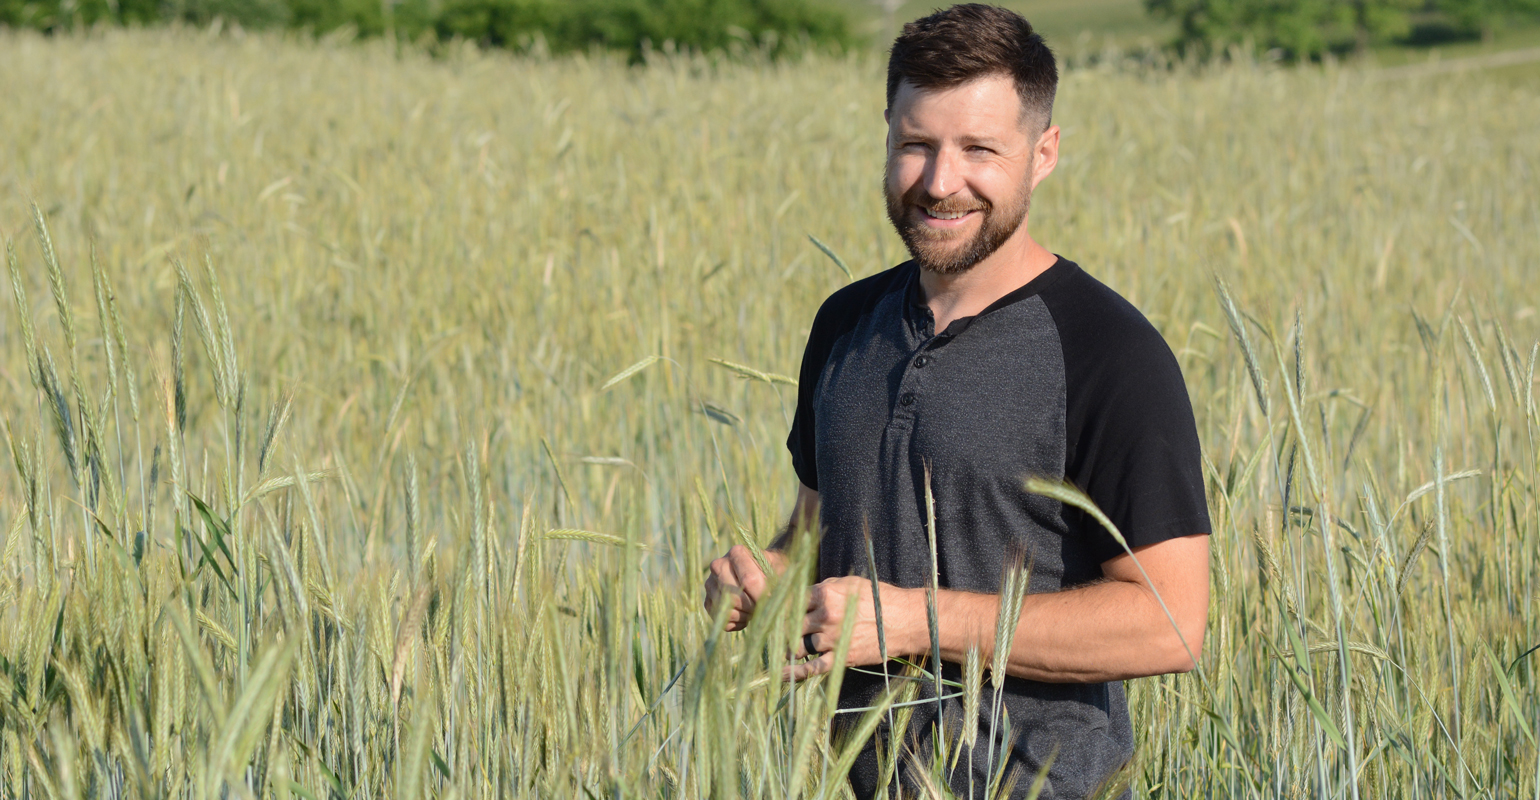 Jason Chatterton stands in field of cereal rye